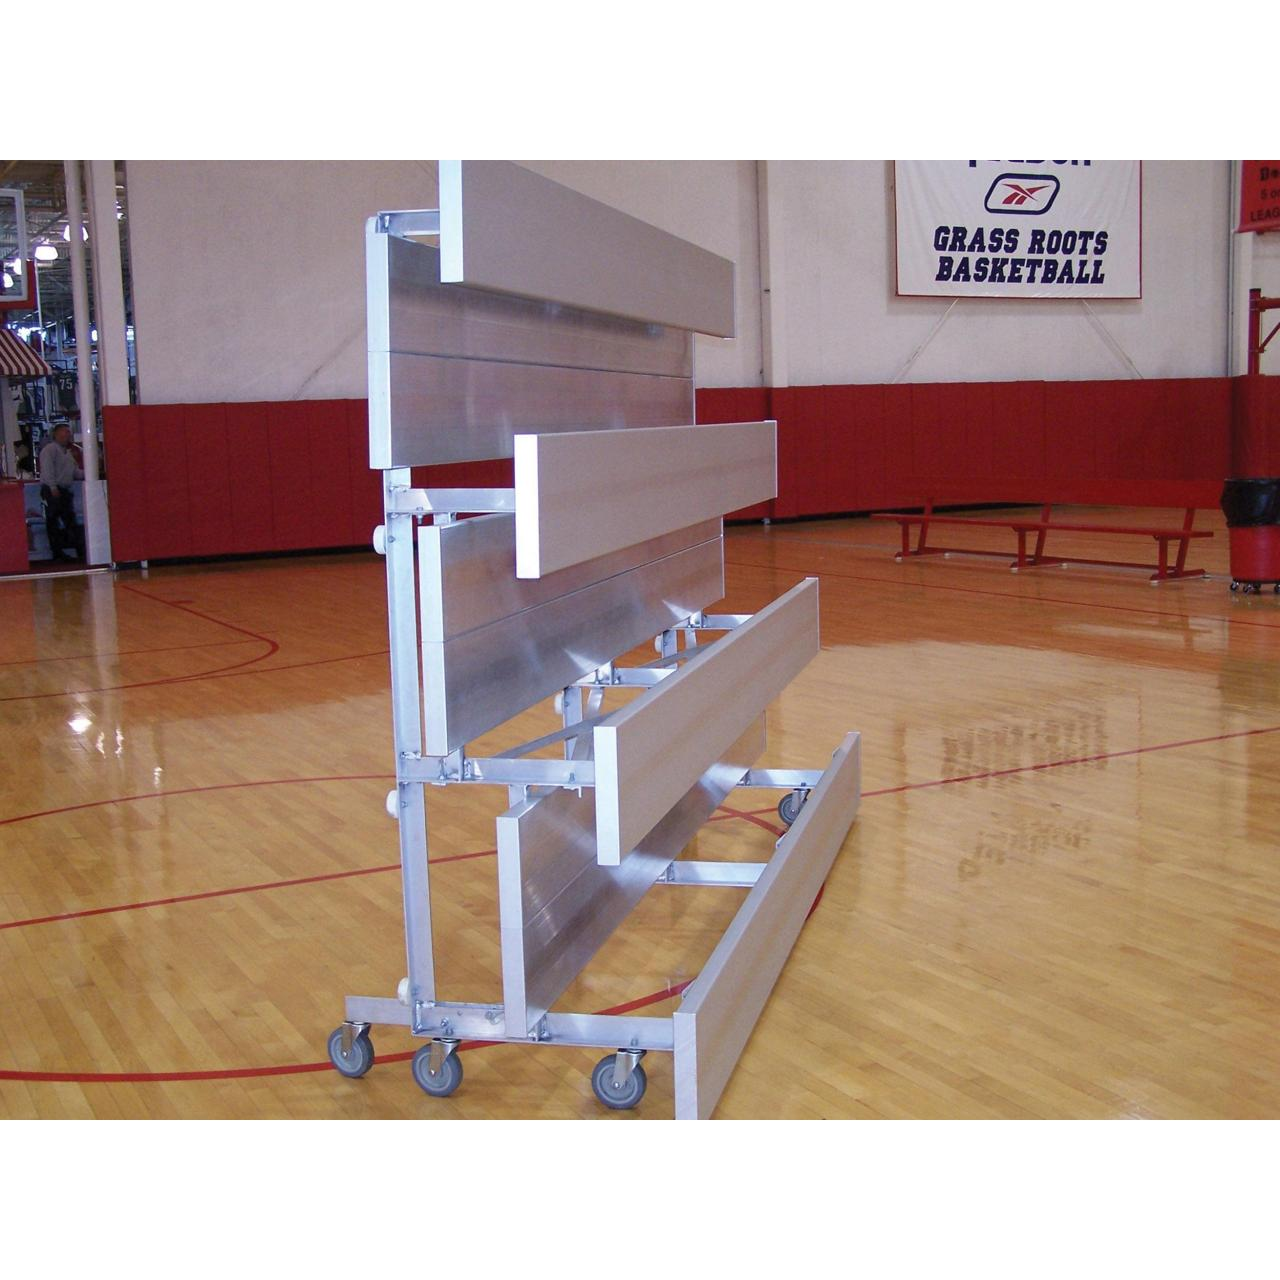 Buy cheap Baseball-Softball Tip-N-Roll Bleachers 4 Row 7.5' Tip-N-Roll Bleacher from wholesalers